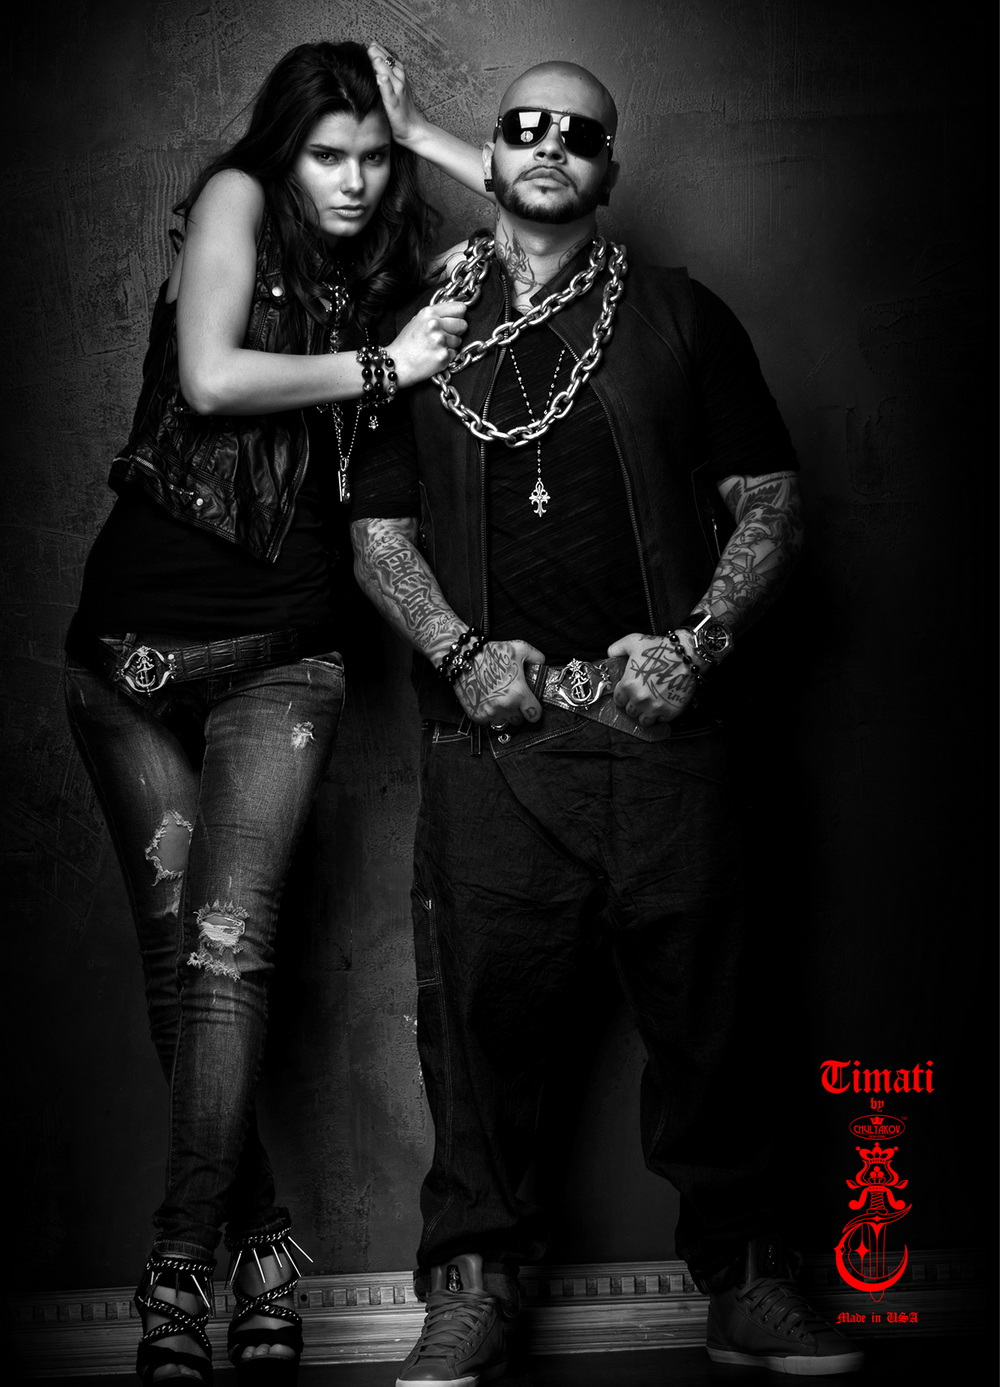 Chulyakov New York Gothic Biker Rock And Now Hip Hop